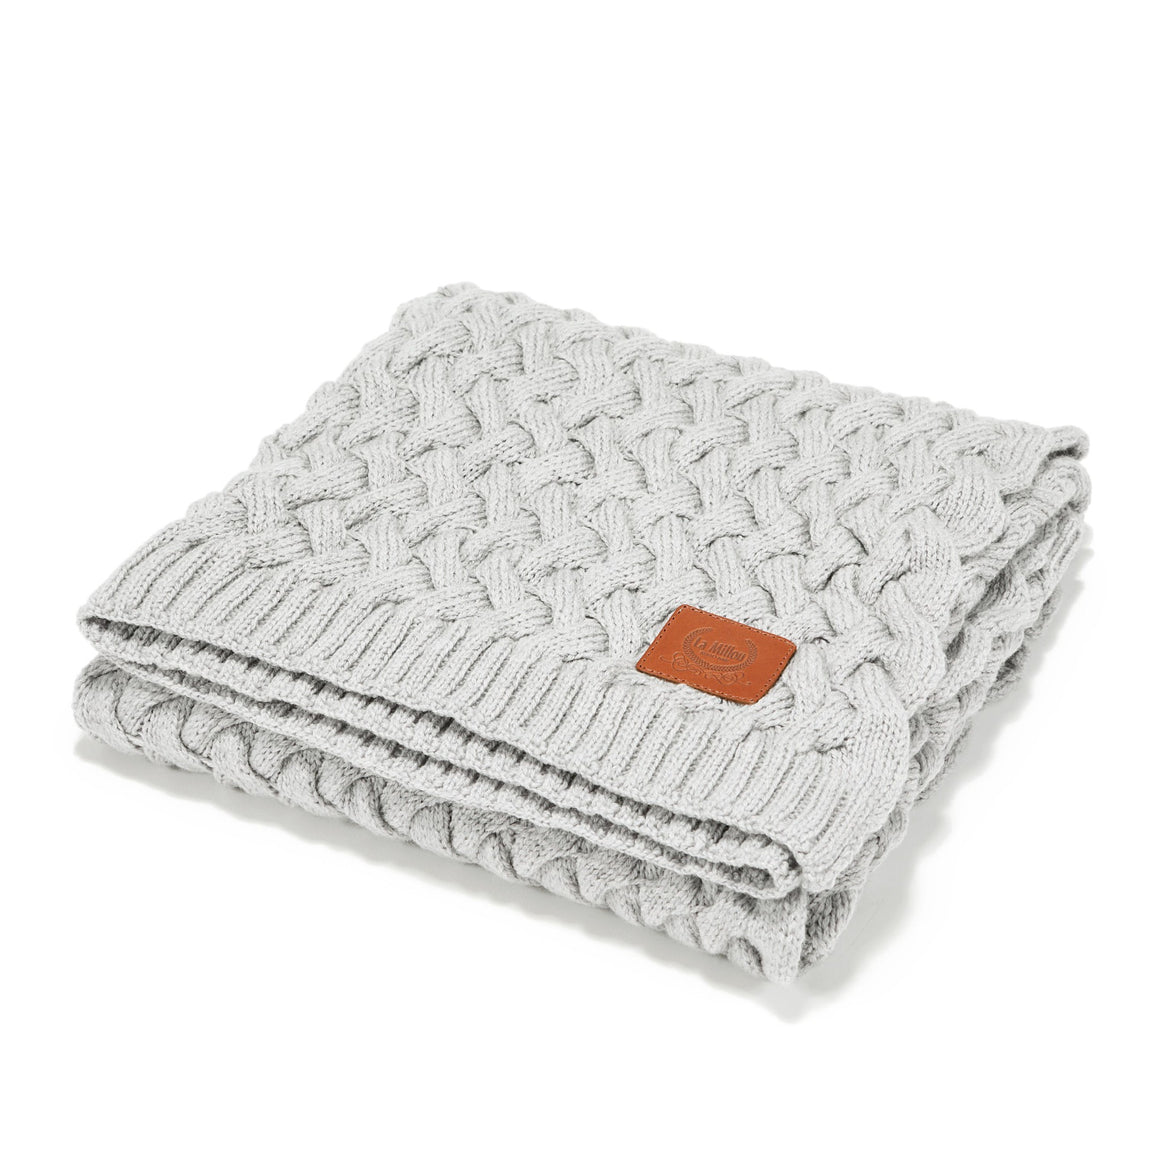 MERINO WOOL TENDER BLANKET - HIMALAYA ROCK